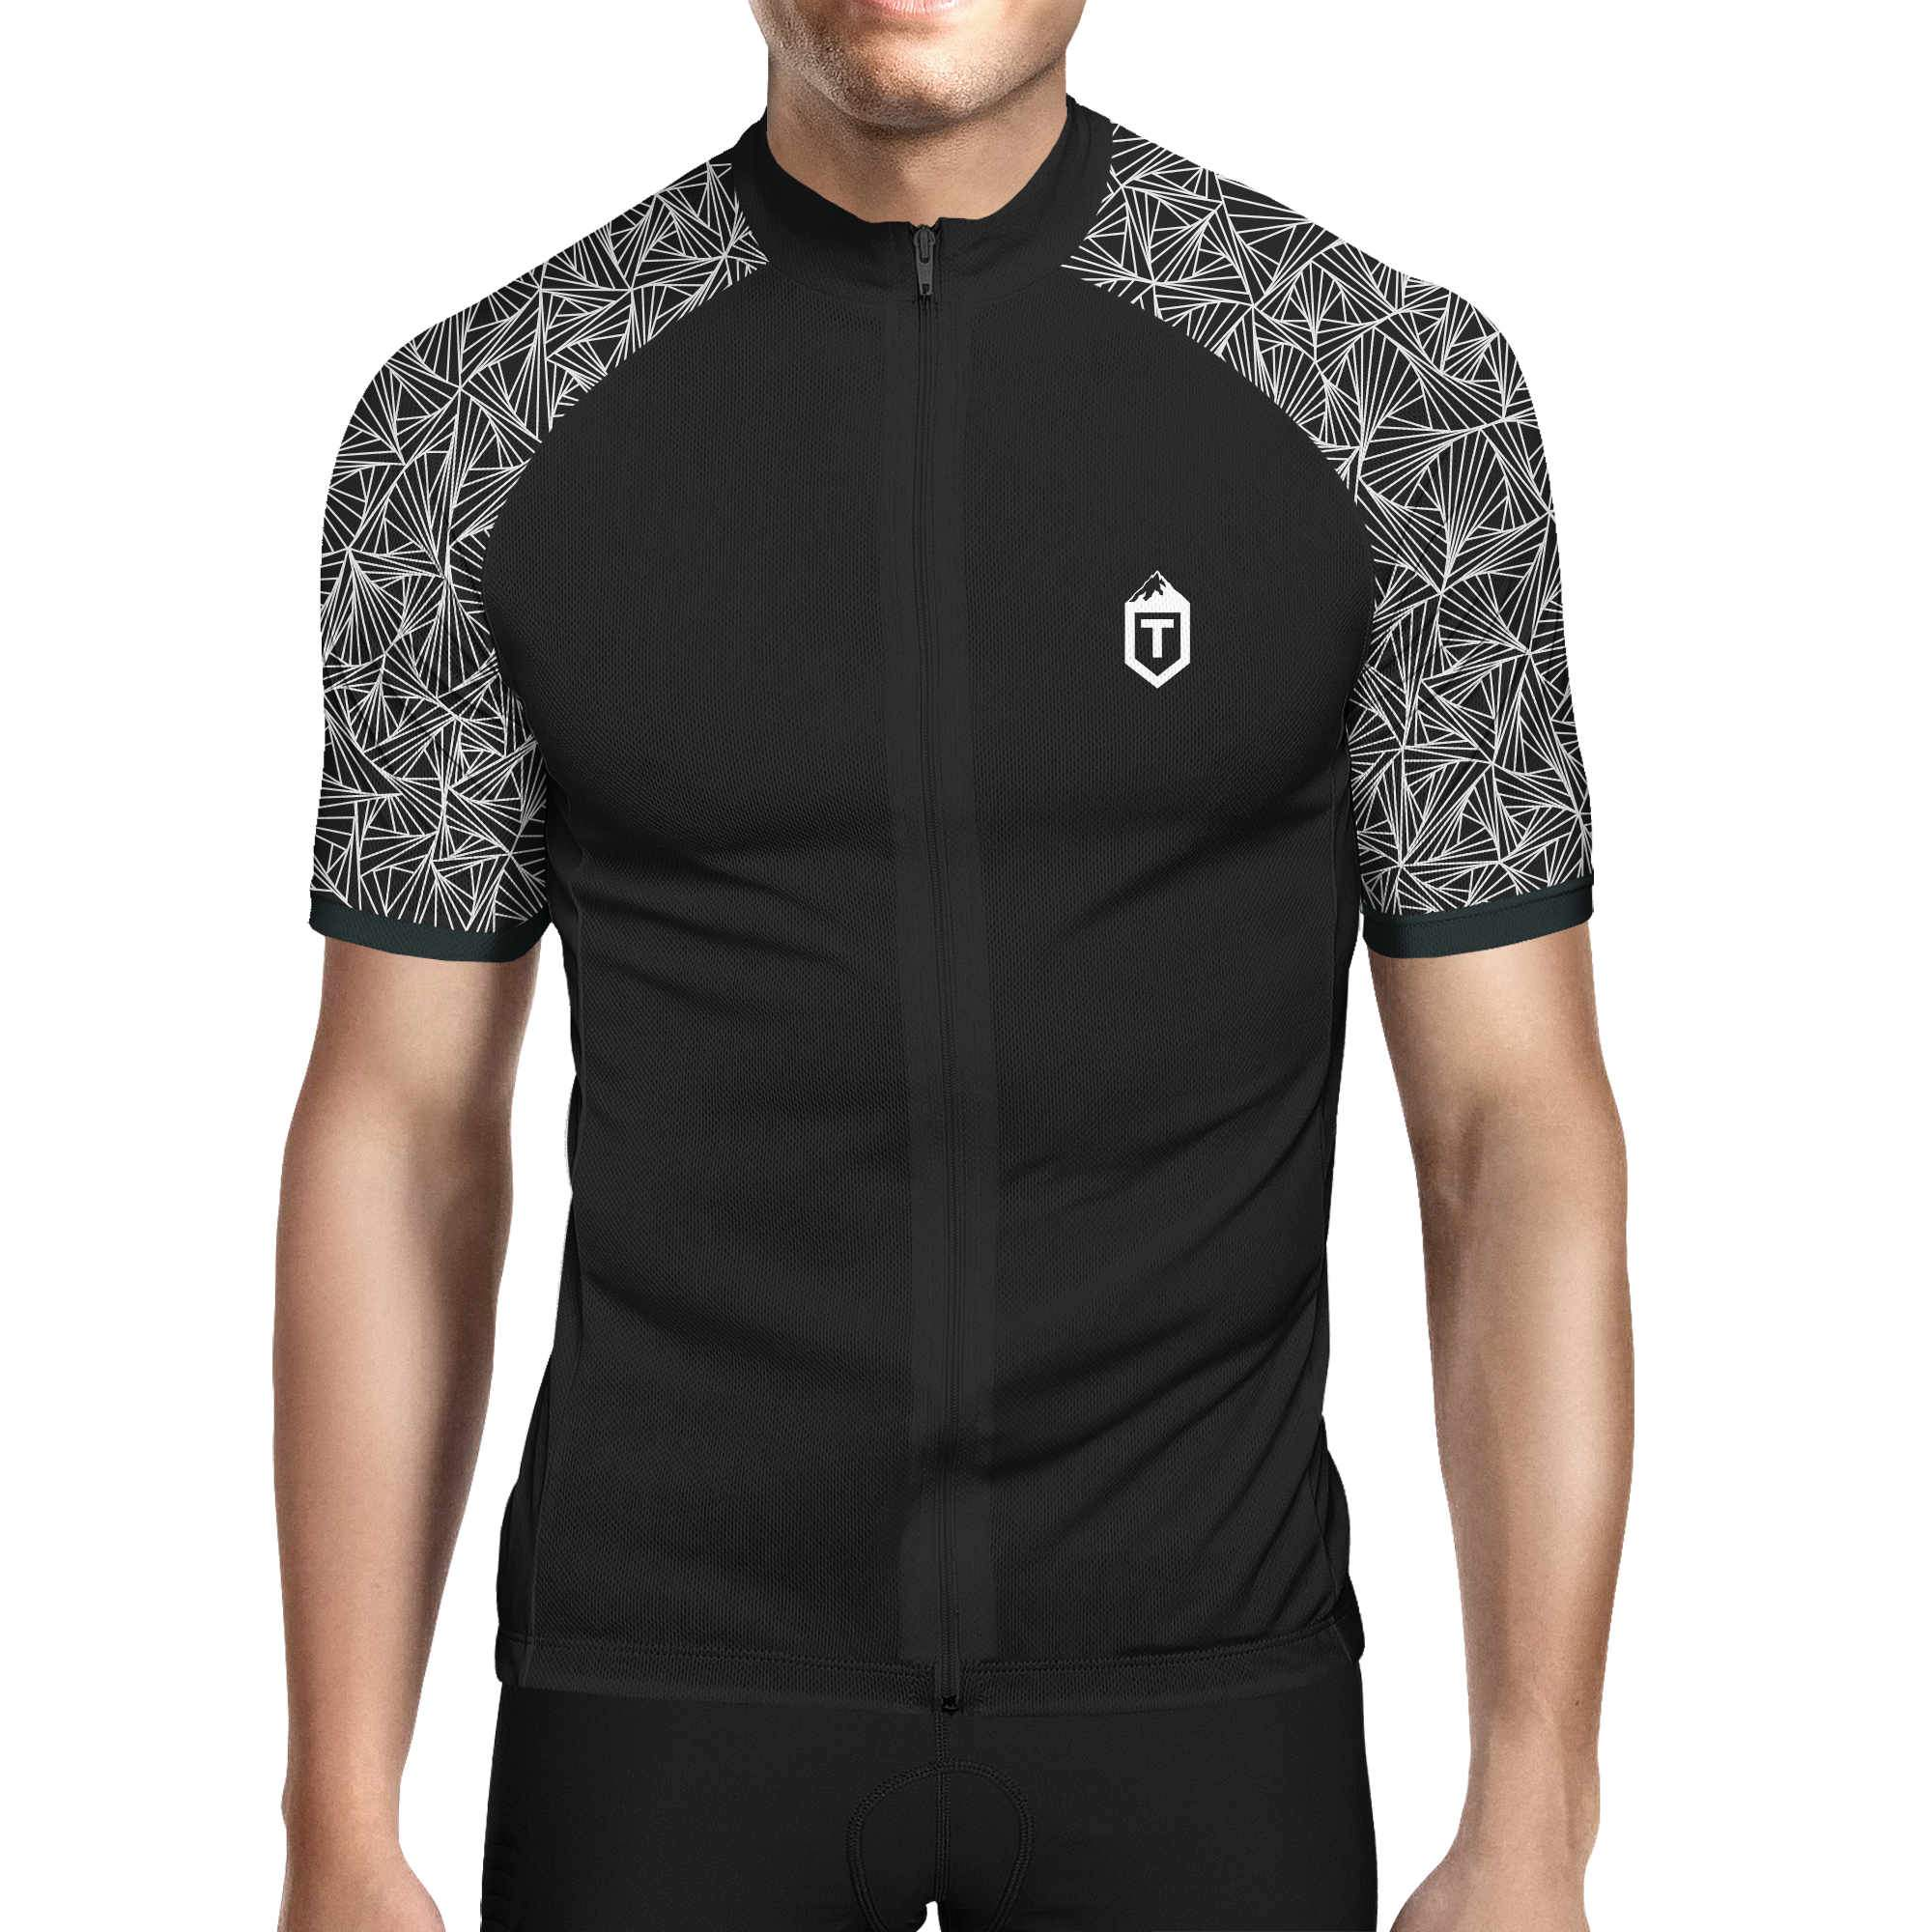 Mens Triangles Jersey - Black / White Front